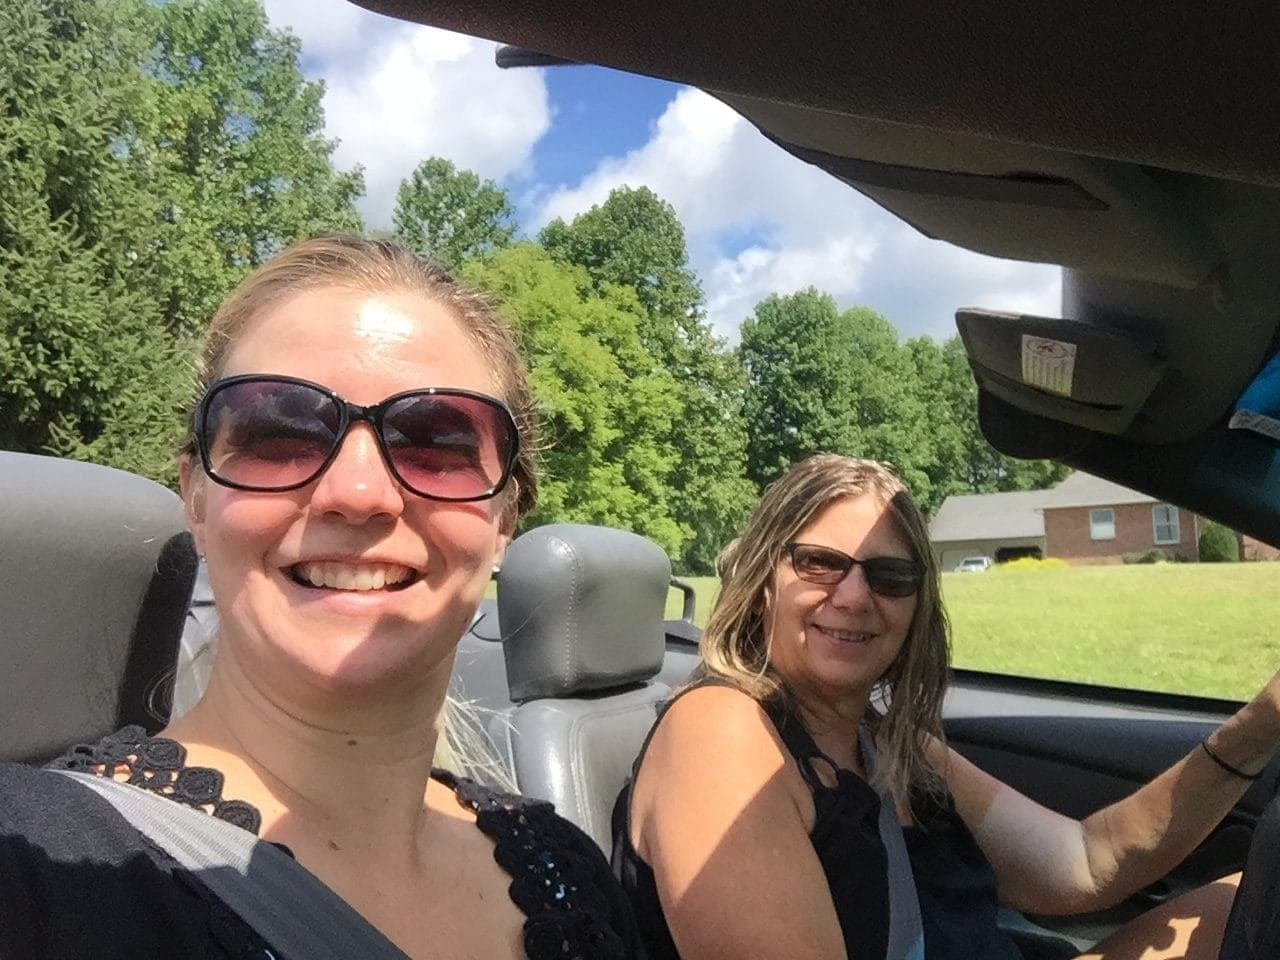 convertible riding with my mom